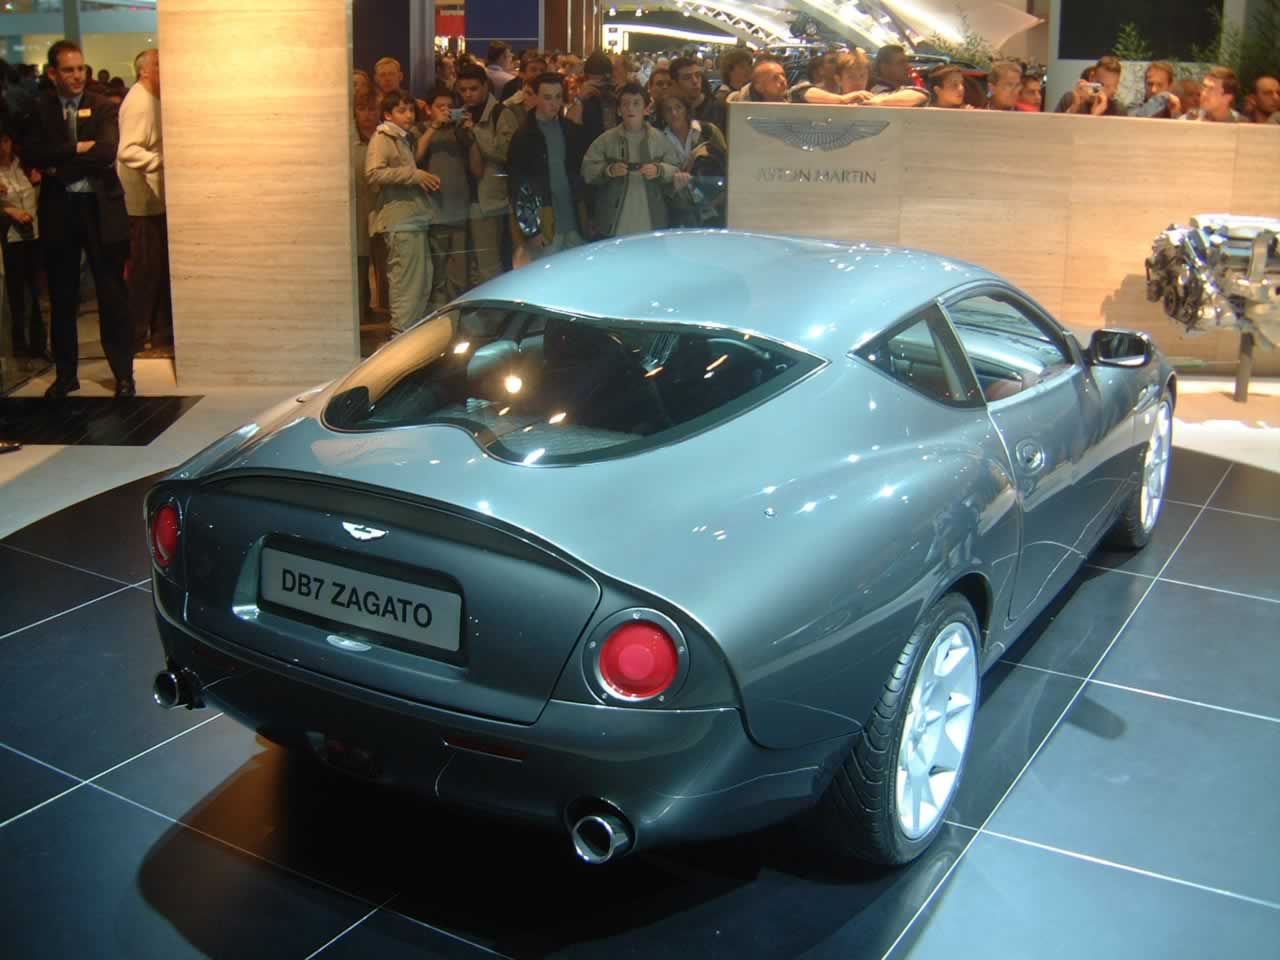 aston martin db7 zagato 2010 wallpaper